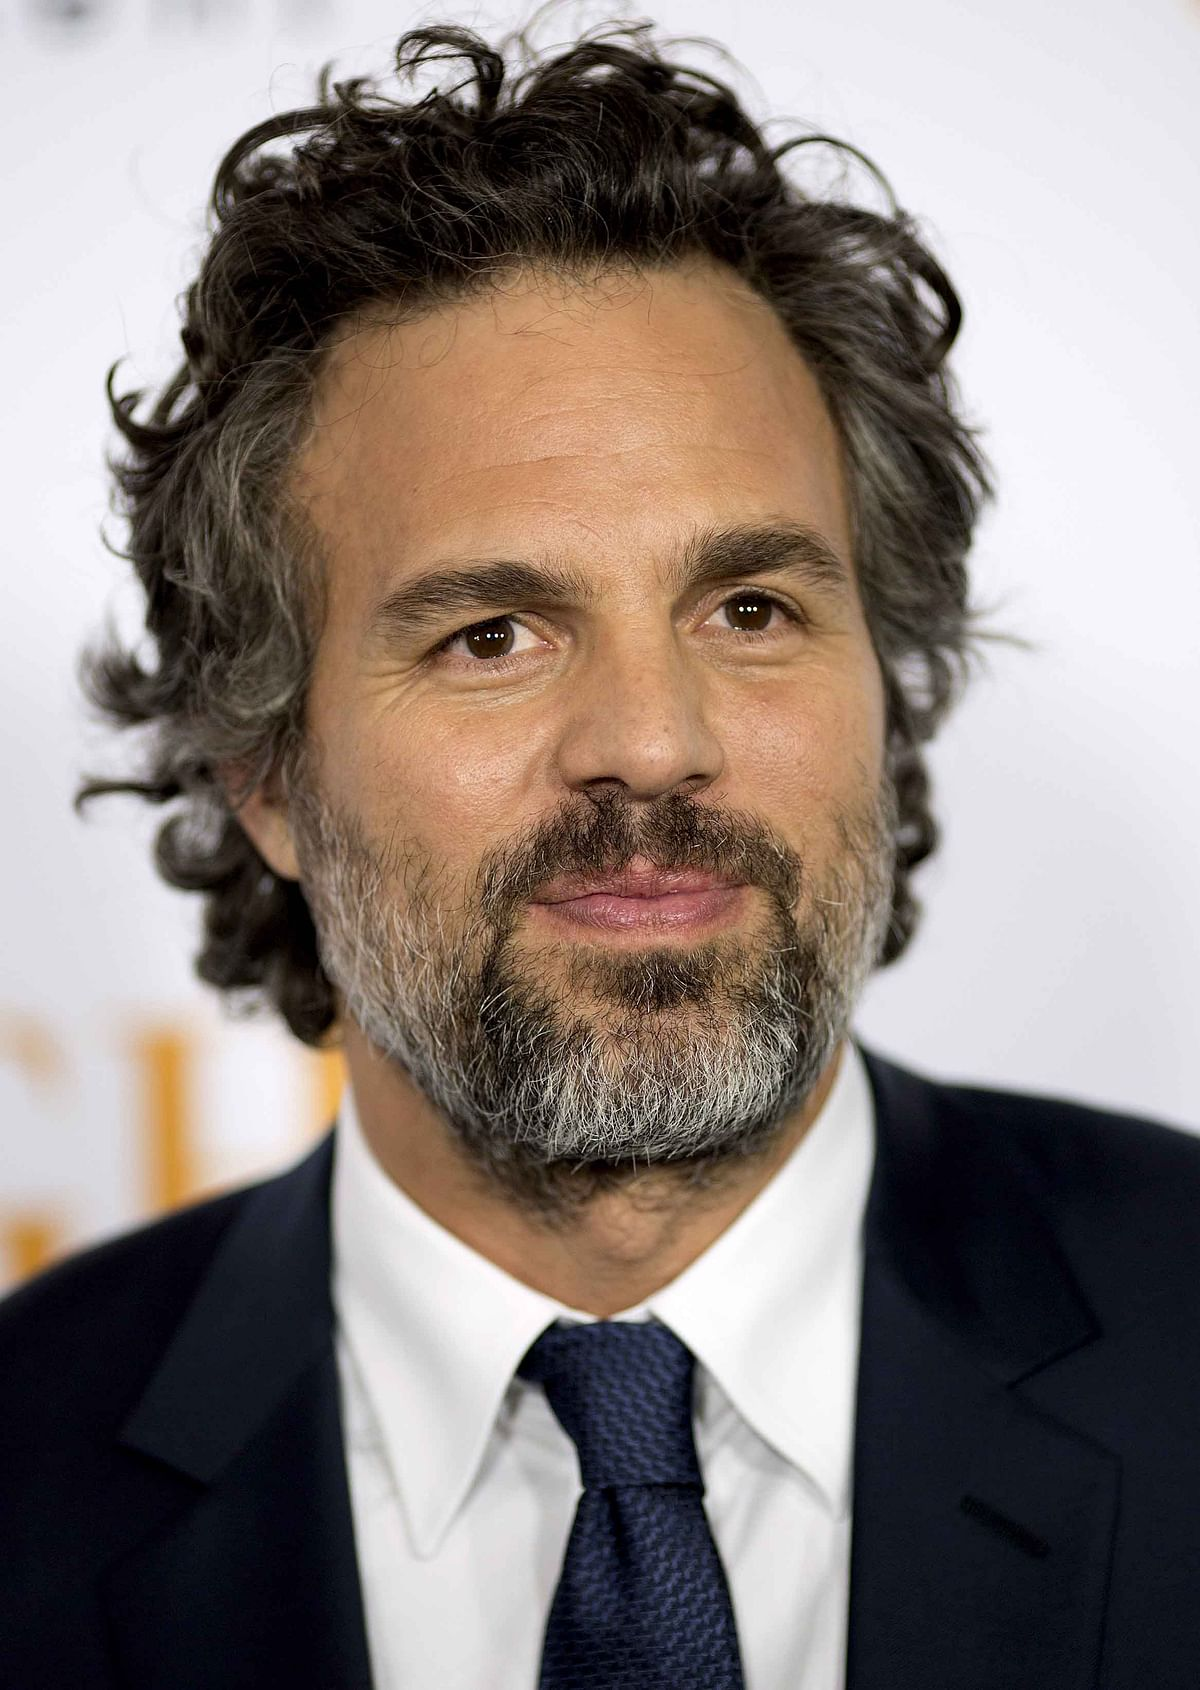 Hollywood actor Mark Ruffalo will take president Obama head on in talks around climate change (Photo: Reuters)